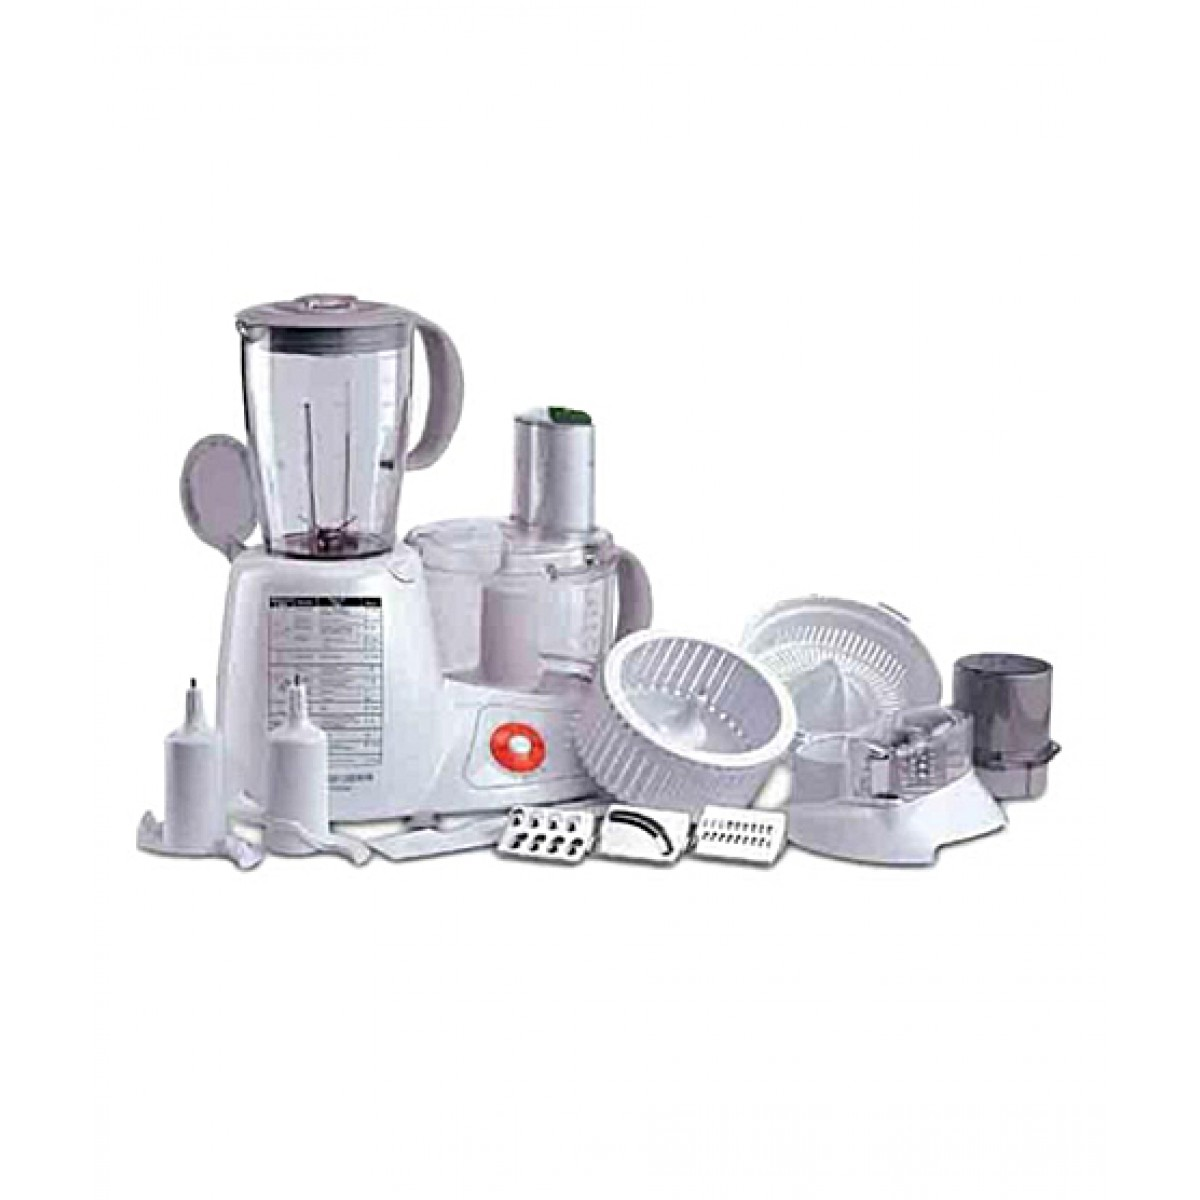 Black & Decker Food Processor (FX1000)